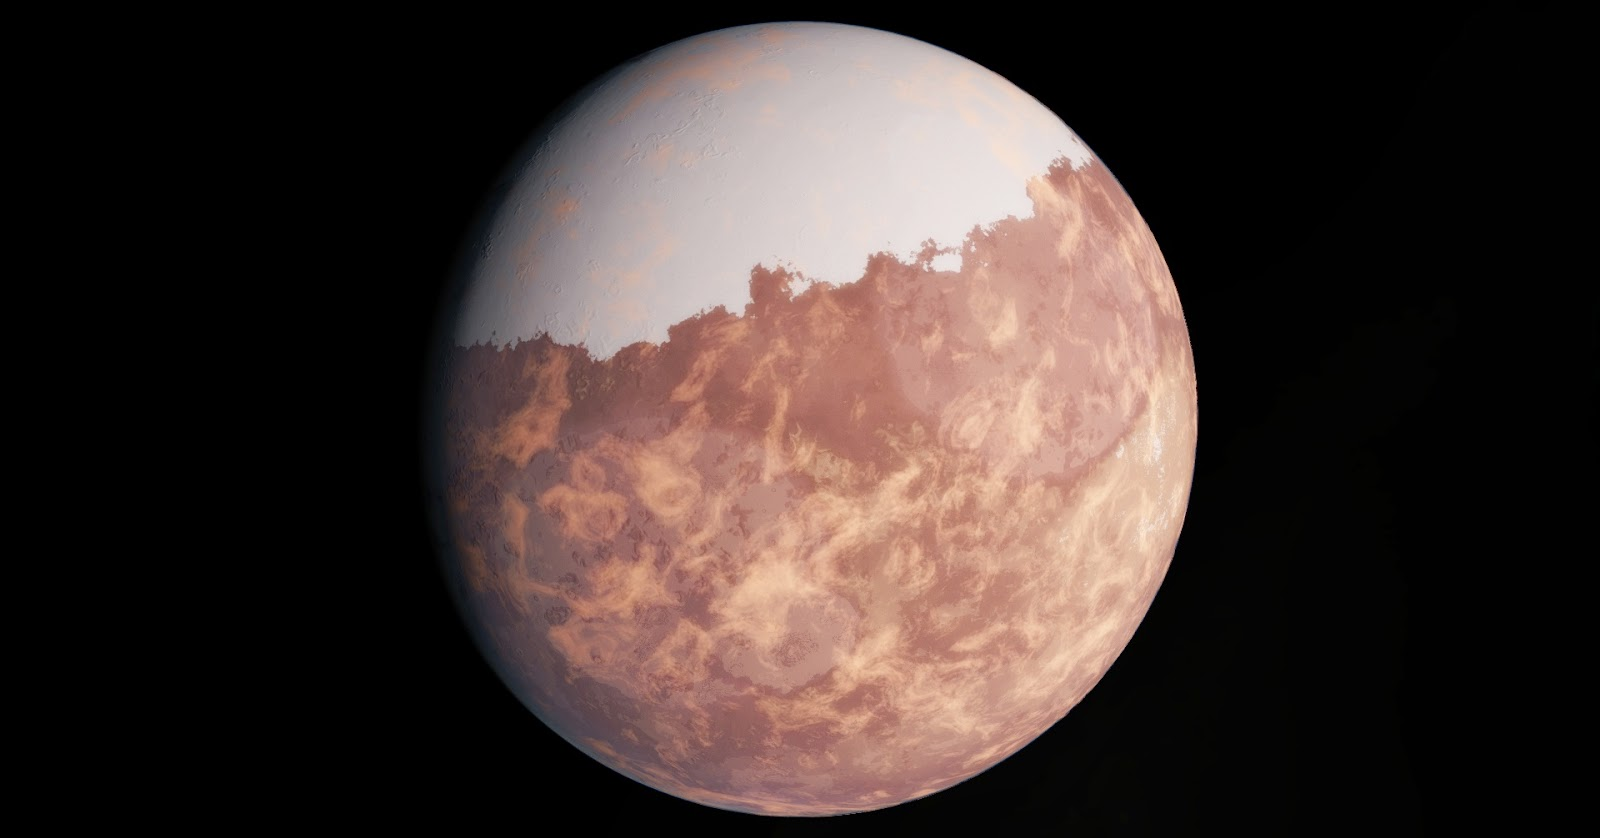 Beyond Earthly Skies: Mega-Earths and Chthonian Planets